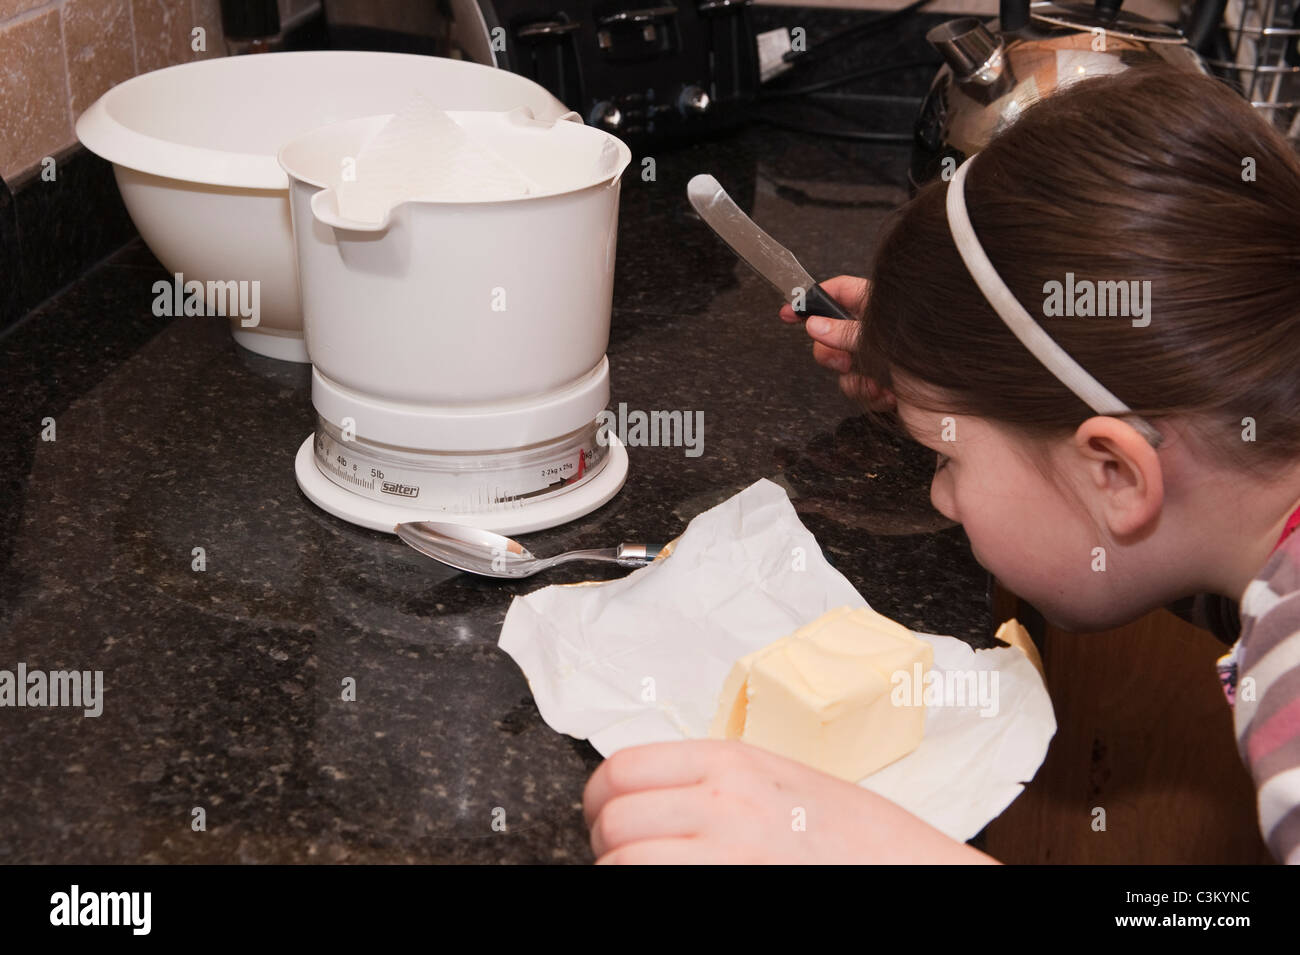 A young girl baking, checking closely the reading on the weighing scales. - Stock Image